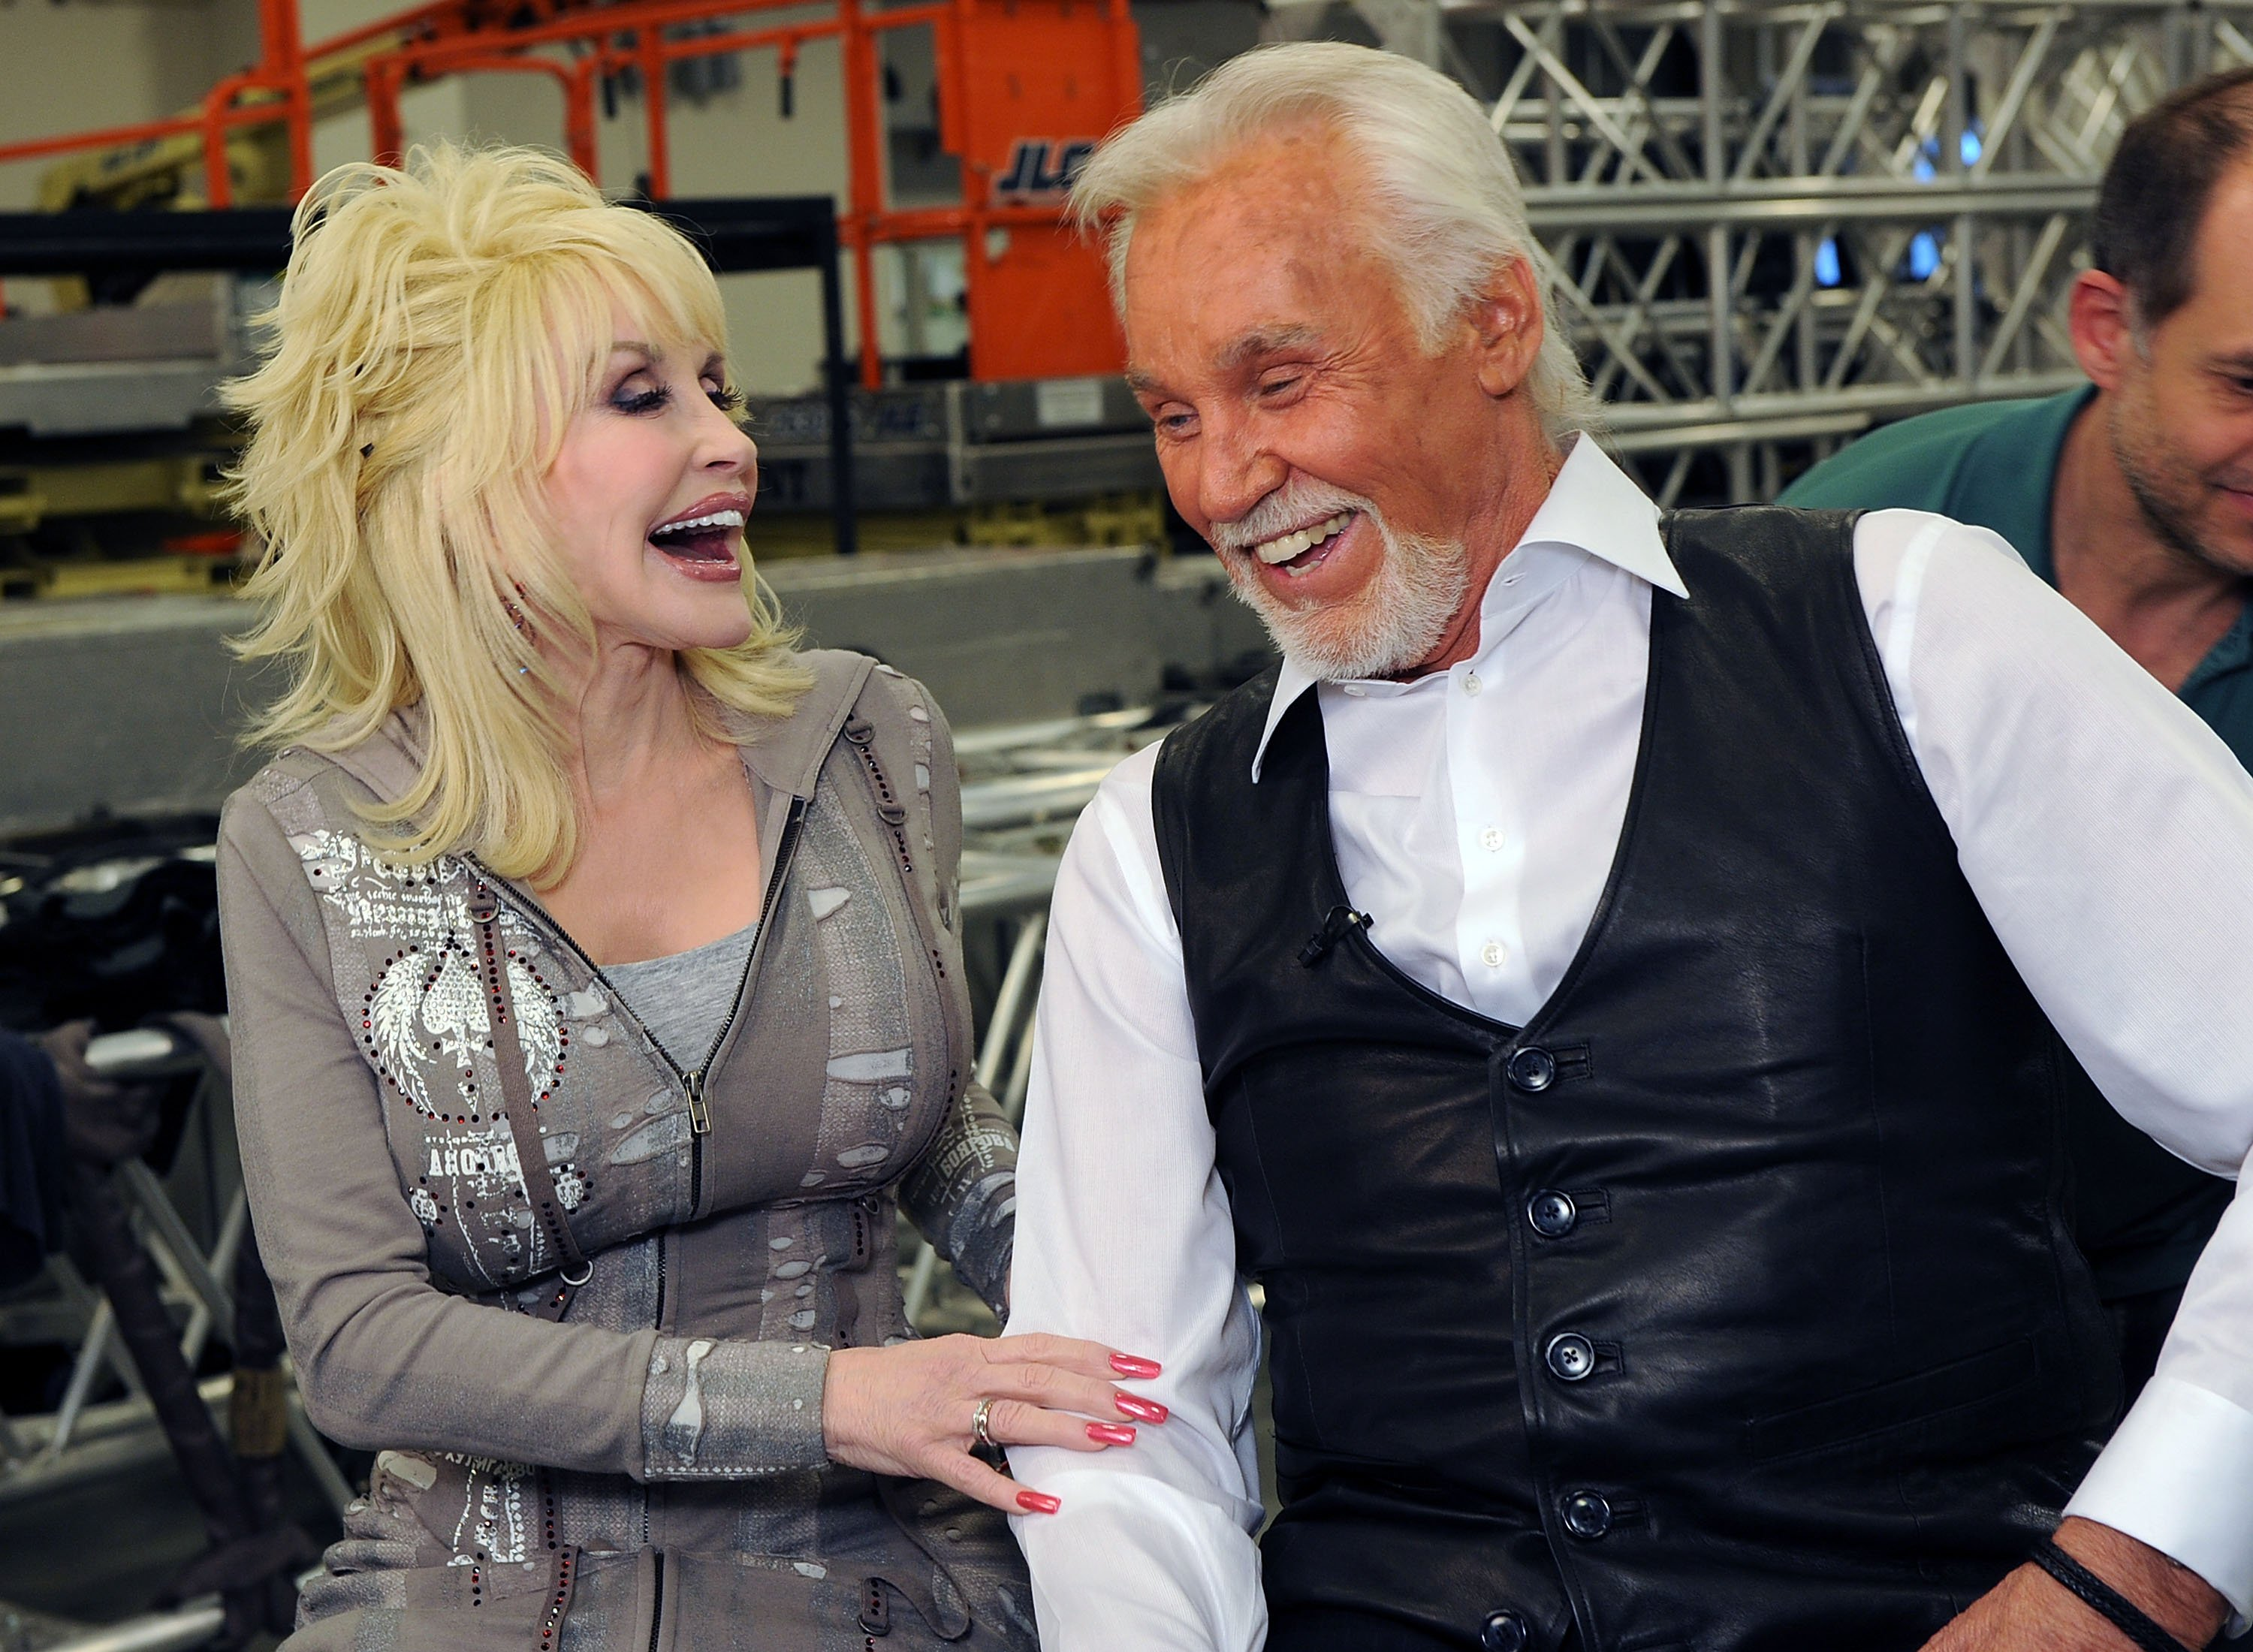 Dolly Parton and Honoree Kenny Rogers Backstage at the Kenny Rogers: The First 50 Years show at the MGM Grand at Foxwoods on April 10, 2010 in Ledyard Center, Connecticut | Photo: GettyImages